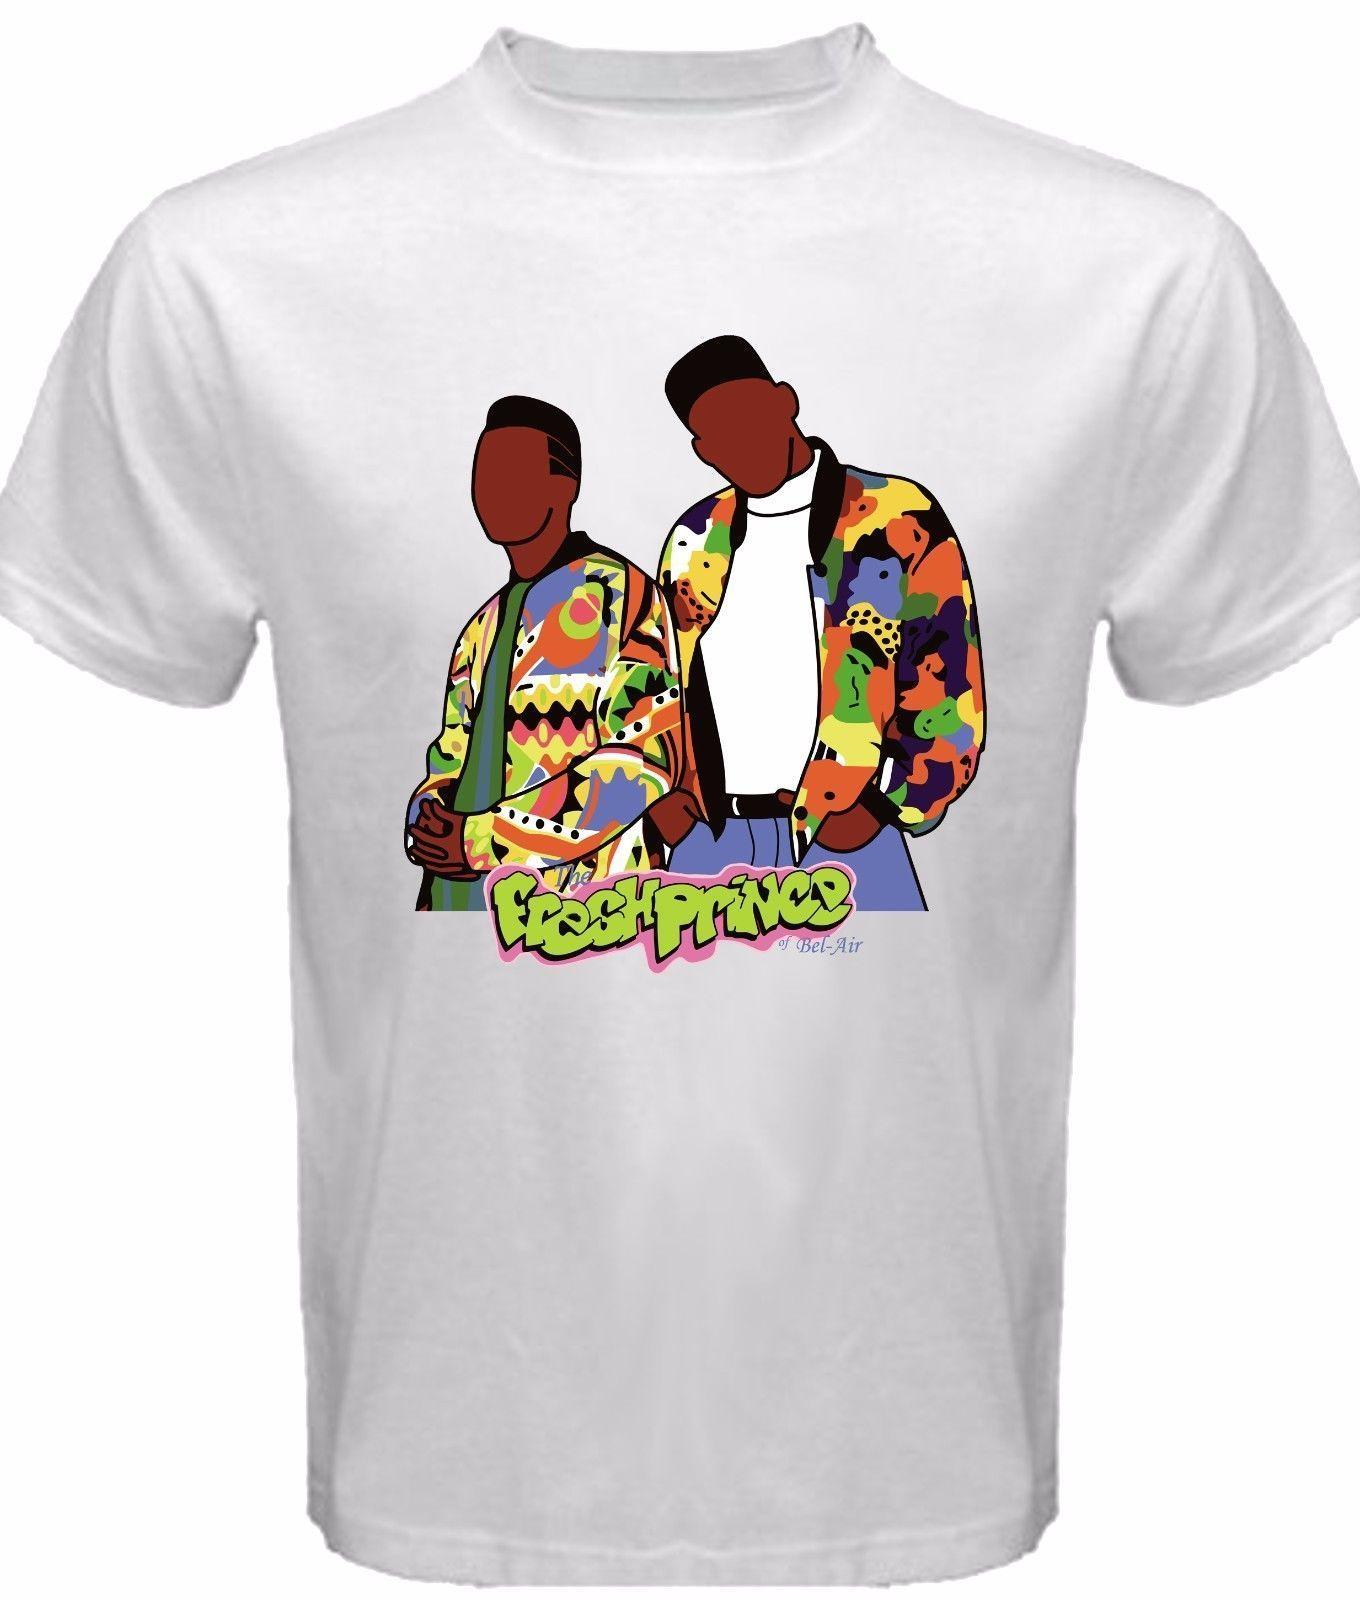 016ed17d2929 FRESH PRINCE OF BEL AIR WILL SMITH SHOW T SHIRT New Men S Tee Size S To 3XL  Funny O Neck T Shirt Allen Iverson Jersey T Shirts Designer Funny Tee Shirt  From ...